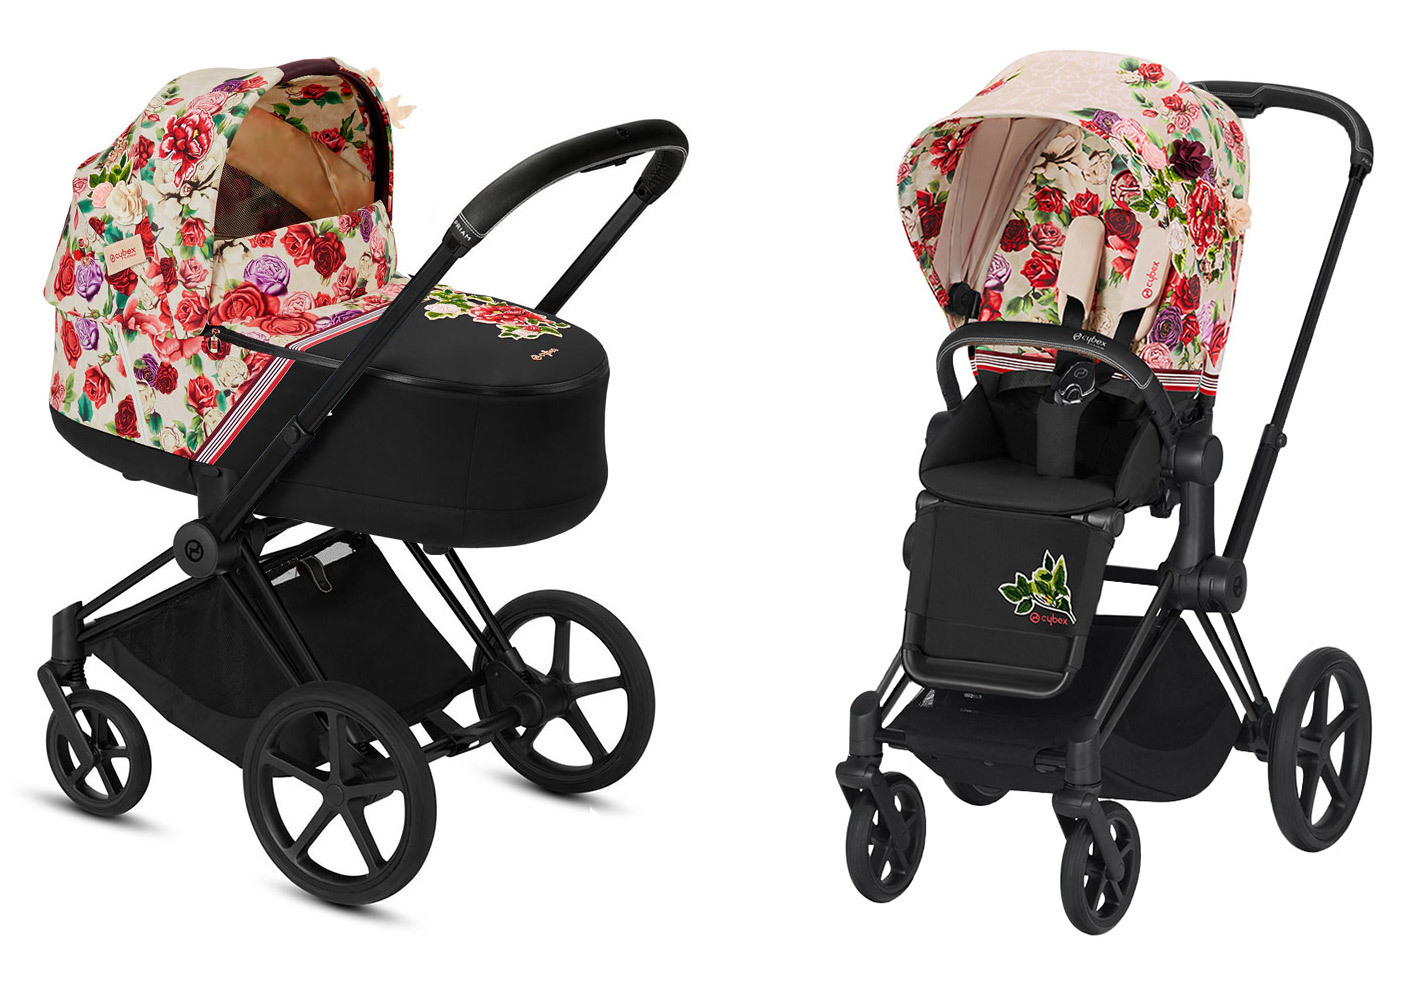 Цвета Cybex Priam 2 в 1 Детская коляска Cybex Priam III 2 в 1 FE Spring Blossom Light шасси Matt Black cybex-priam-iii-2-in-1-spring-blossom-light-matt-black.jpg